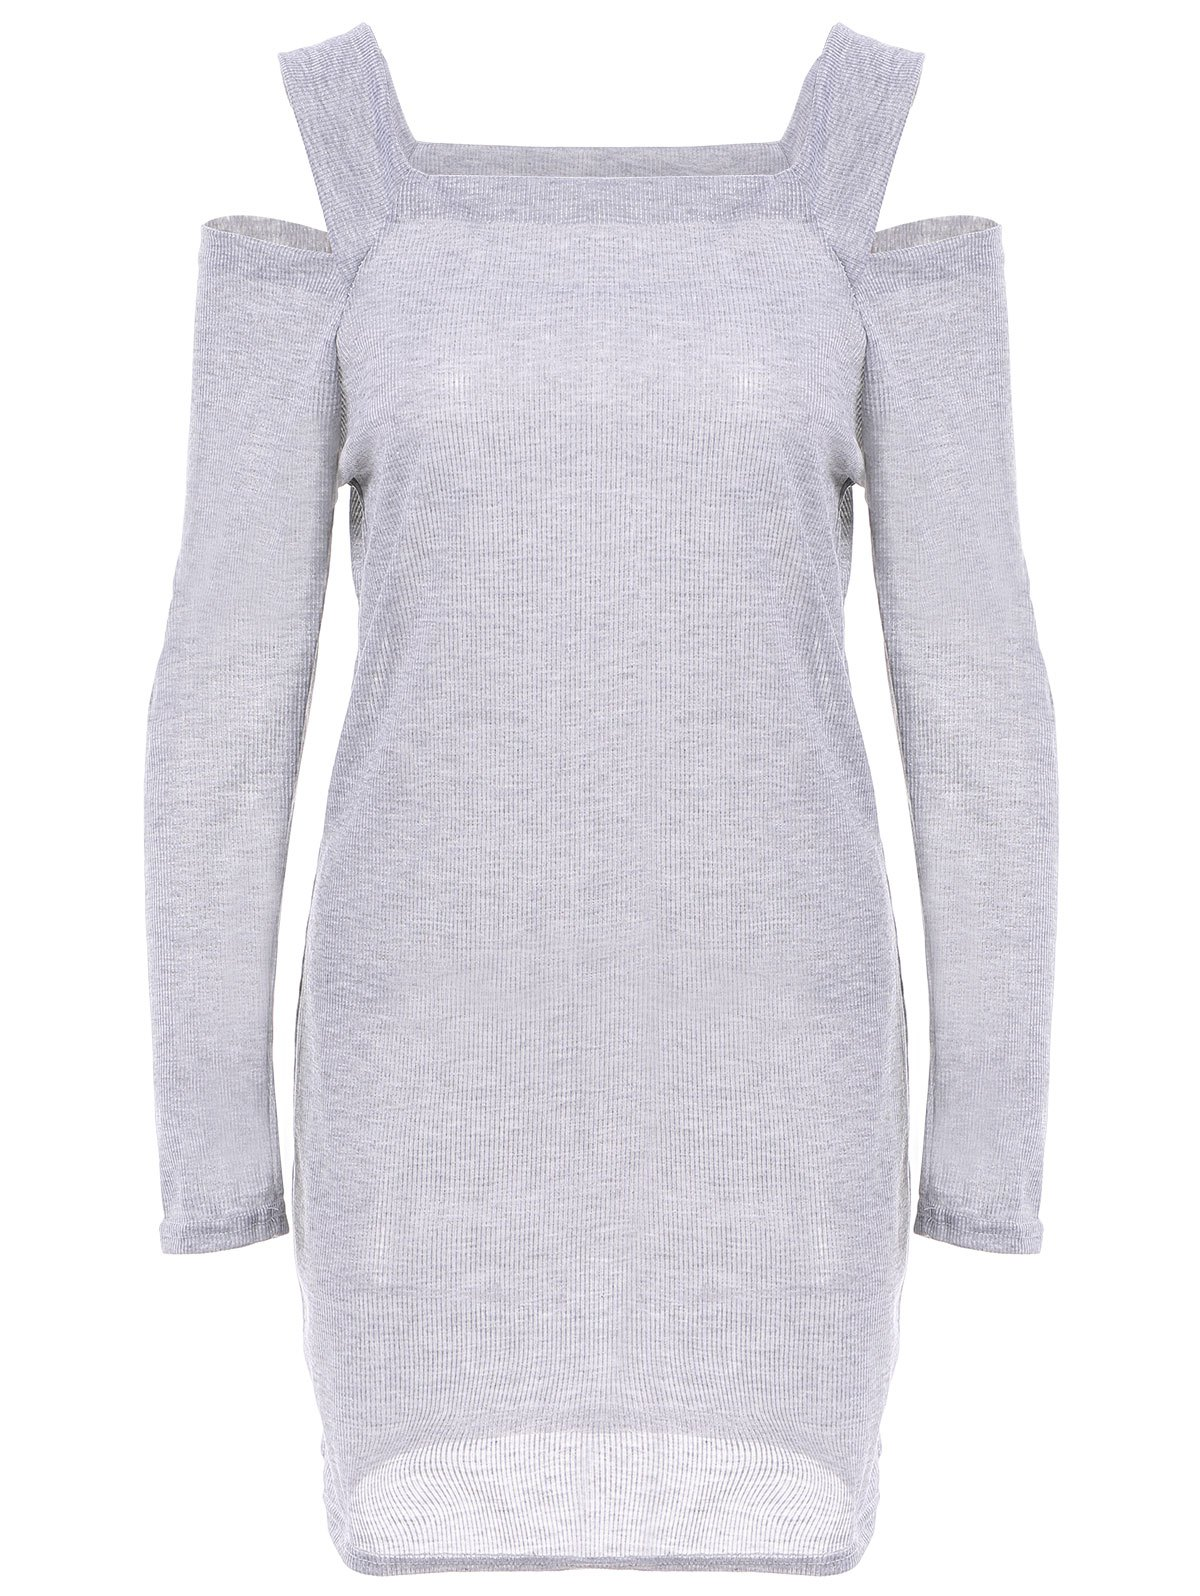 Stylish Square Neck Shoulder Hollow Out Solid Color Long Sleeve Slimming Ribbed Cotton Women's Dress - DEEP GRAY ONE SIZE